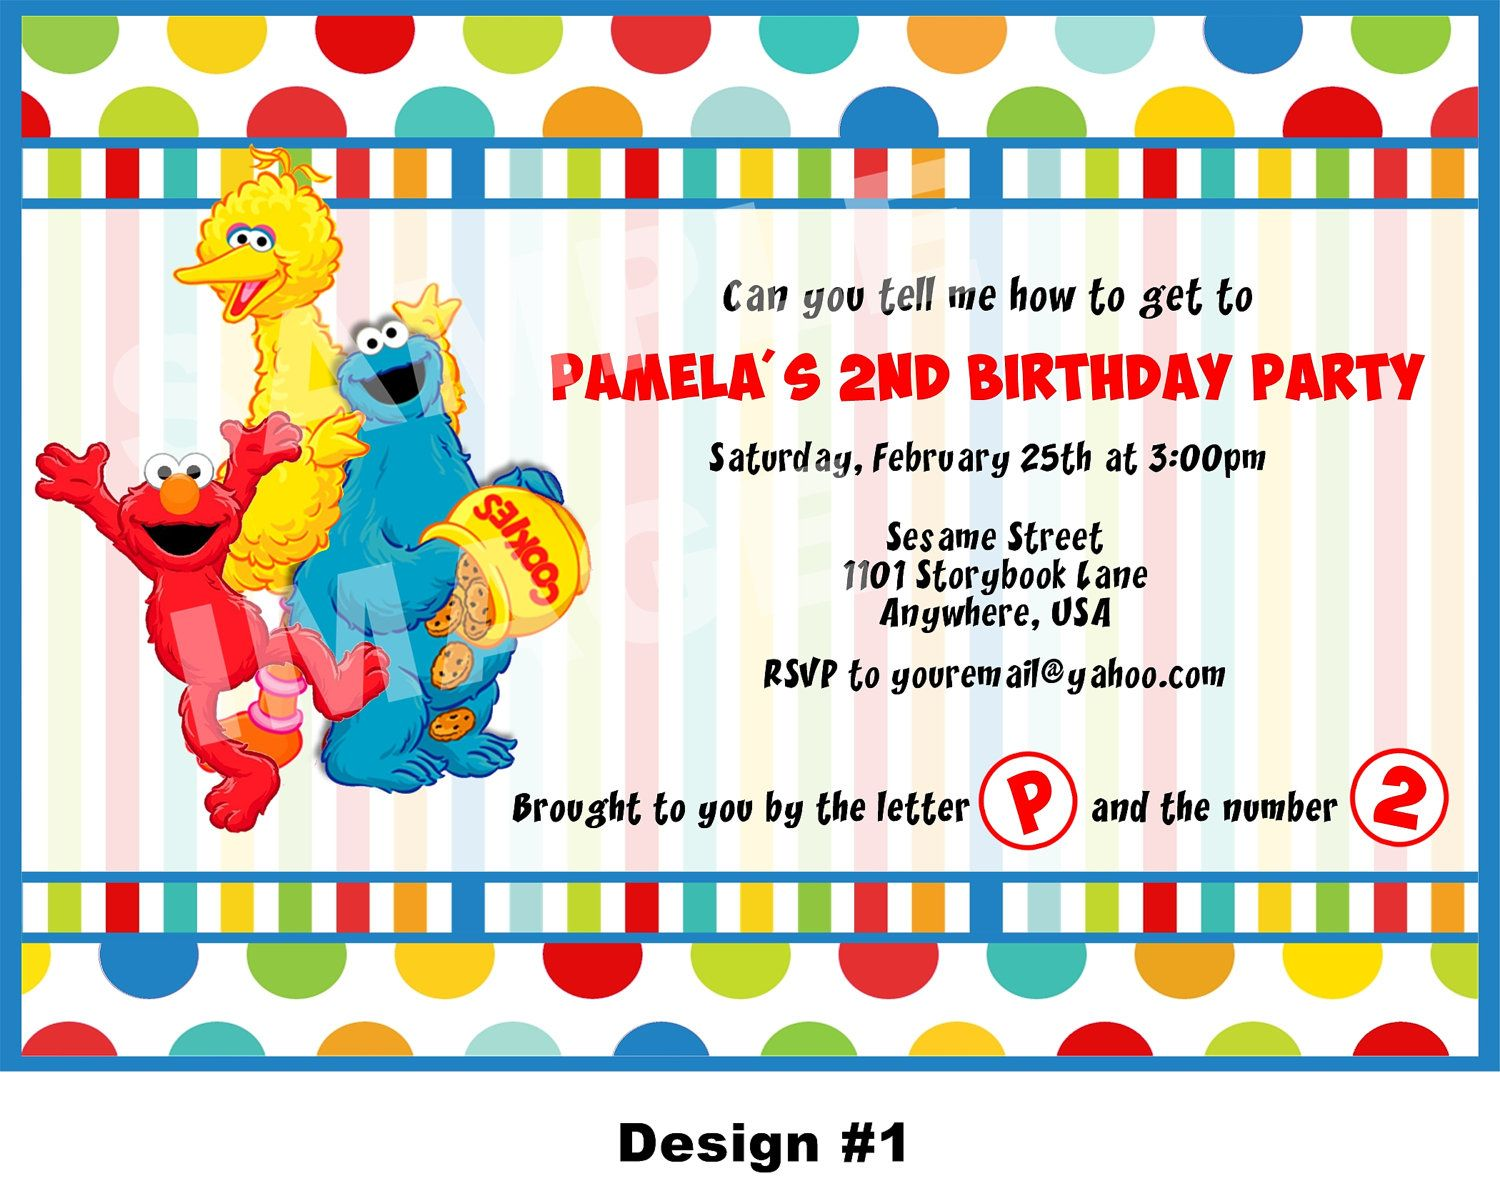 Cookie monster birthday party invitations best christmas destinations sesame street invitation elmo invitation cookie monster big 1637c21f7aa5958a7d01cef29a1772a9 322288917054207685 pronofoot35fo Images